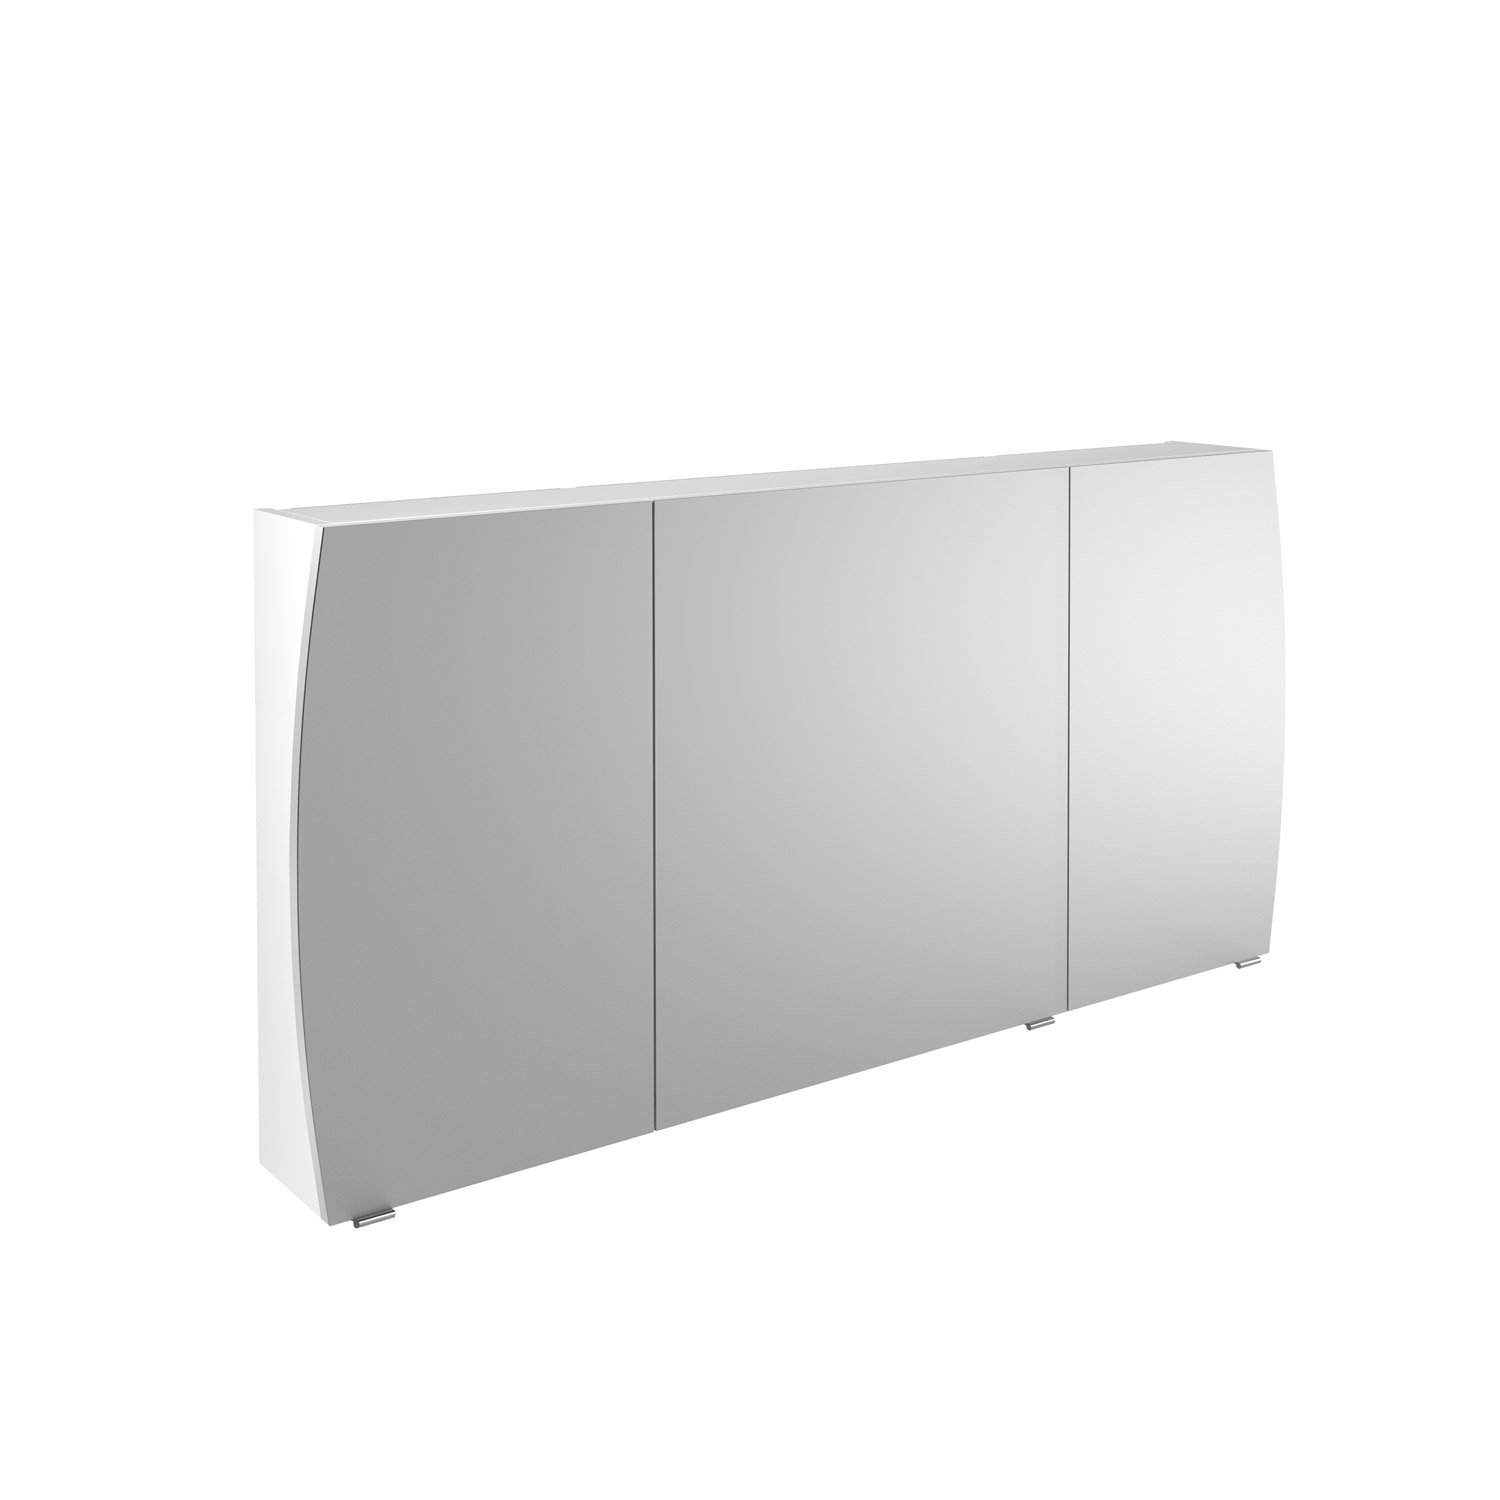 armoire de toilette l 140 cm blanc image leroy merlin. Black Bedroom Furniture Sets. Home Design Ideas